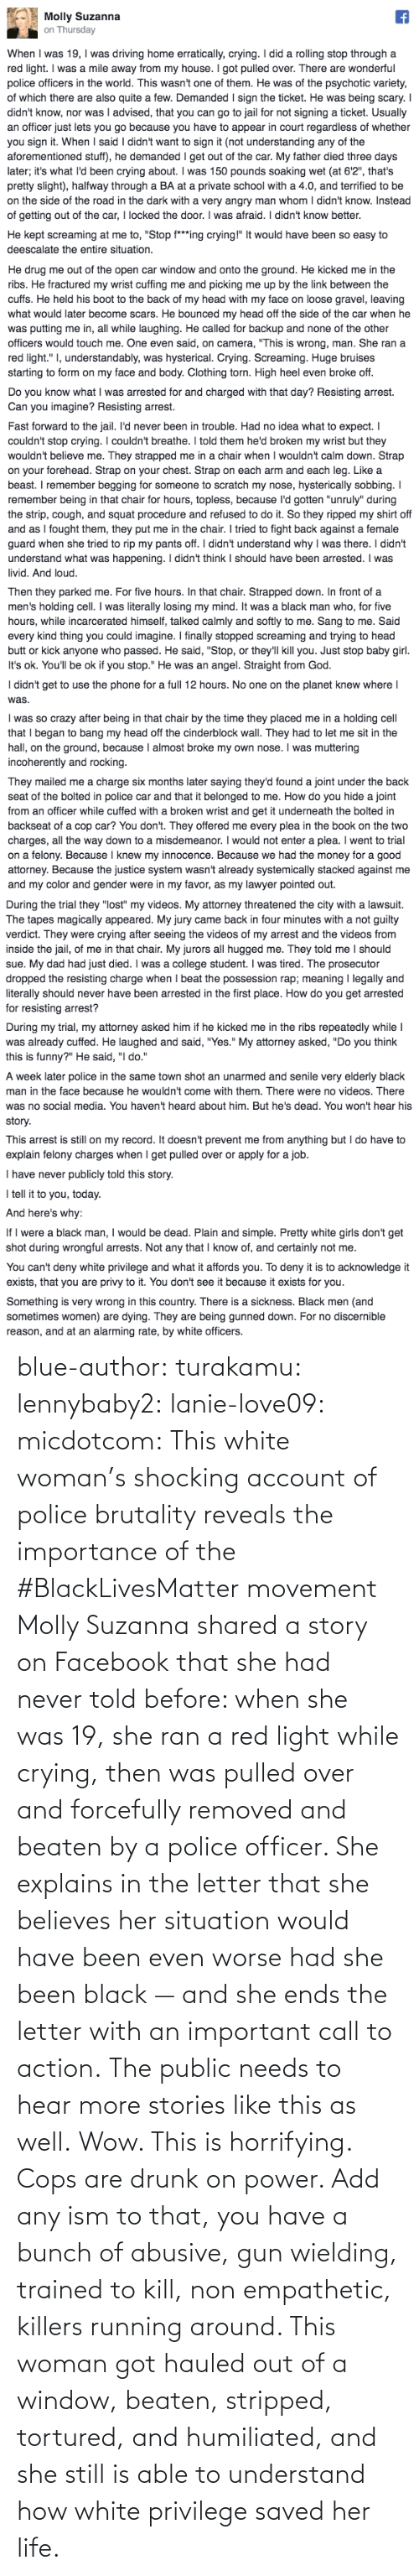 public: blue-author: turakamu:  lennybaby2:  lanie-love09:  micdotcom:  This white woman's shocking account of police brutality reveals the importance of the #BlackLivesMatter movement Molly Suzanna shared a story on Facebook that she had never told before: when she was 19, she ran a red light while crying, then was pulled over and forcefully removed and beaten by a police officer. She explains in the letter that she believes her situation would have been even worse had she been black — and she ends the letter with an important call to action.  The public needs to hear more stories like this as well.  Wow. This is horrifying.  Cops are drunk on power. Add any ism to that, you have a bunch of abusive, gun wielding, trained to kill, non empathetic, killers running around.    This woman got hauled out of a window, beaten, stripped, tortured, and humiliated, and she still is able to understand how white privilege saved her life.